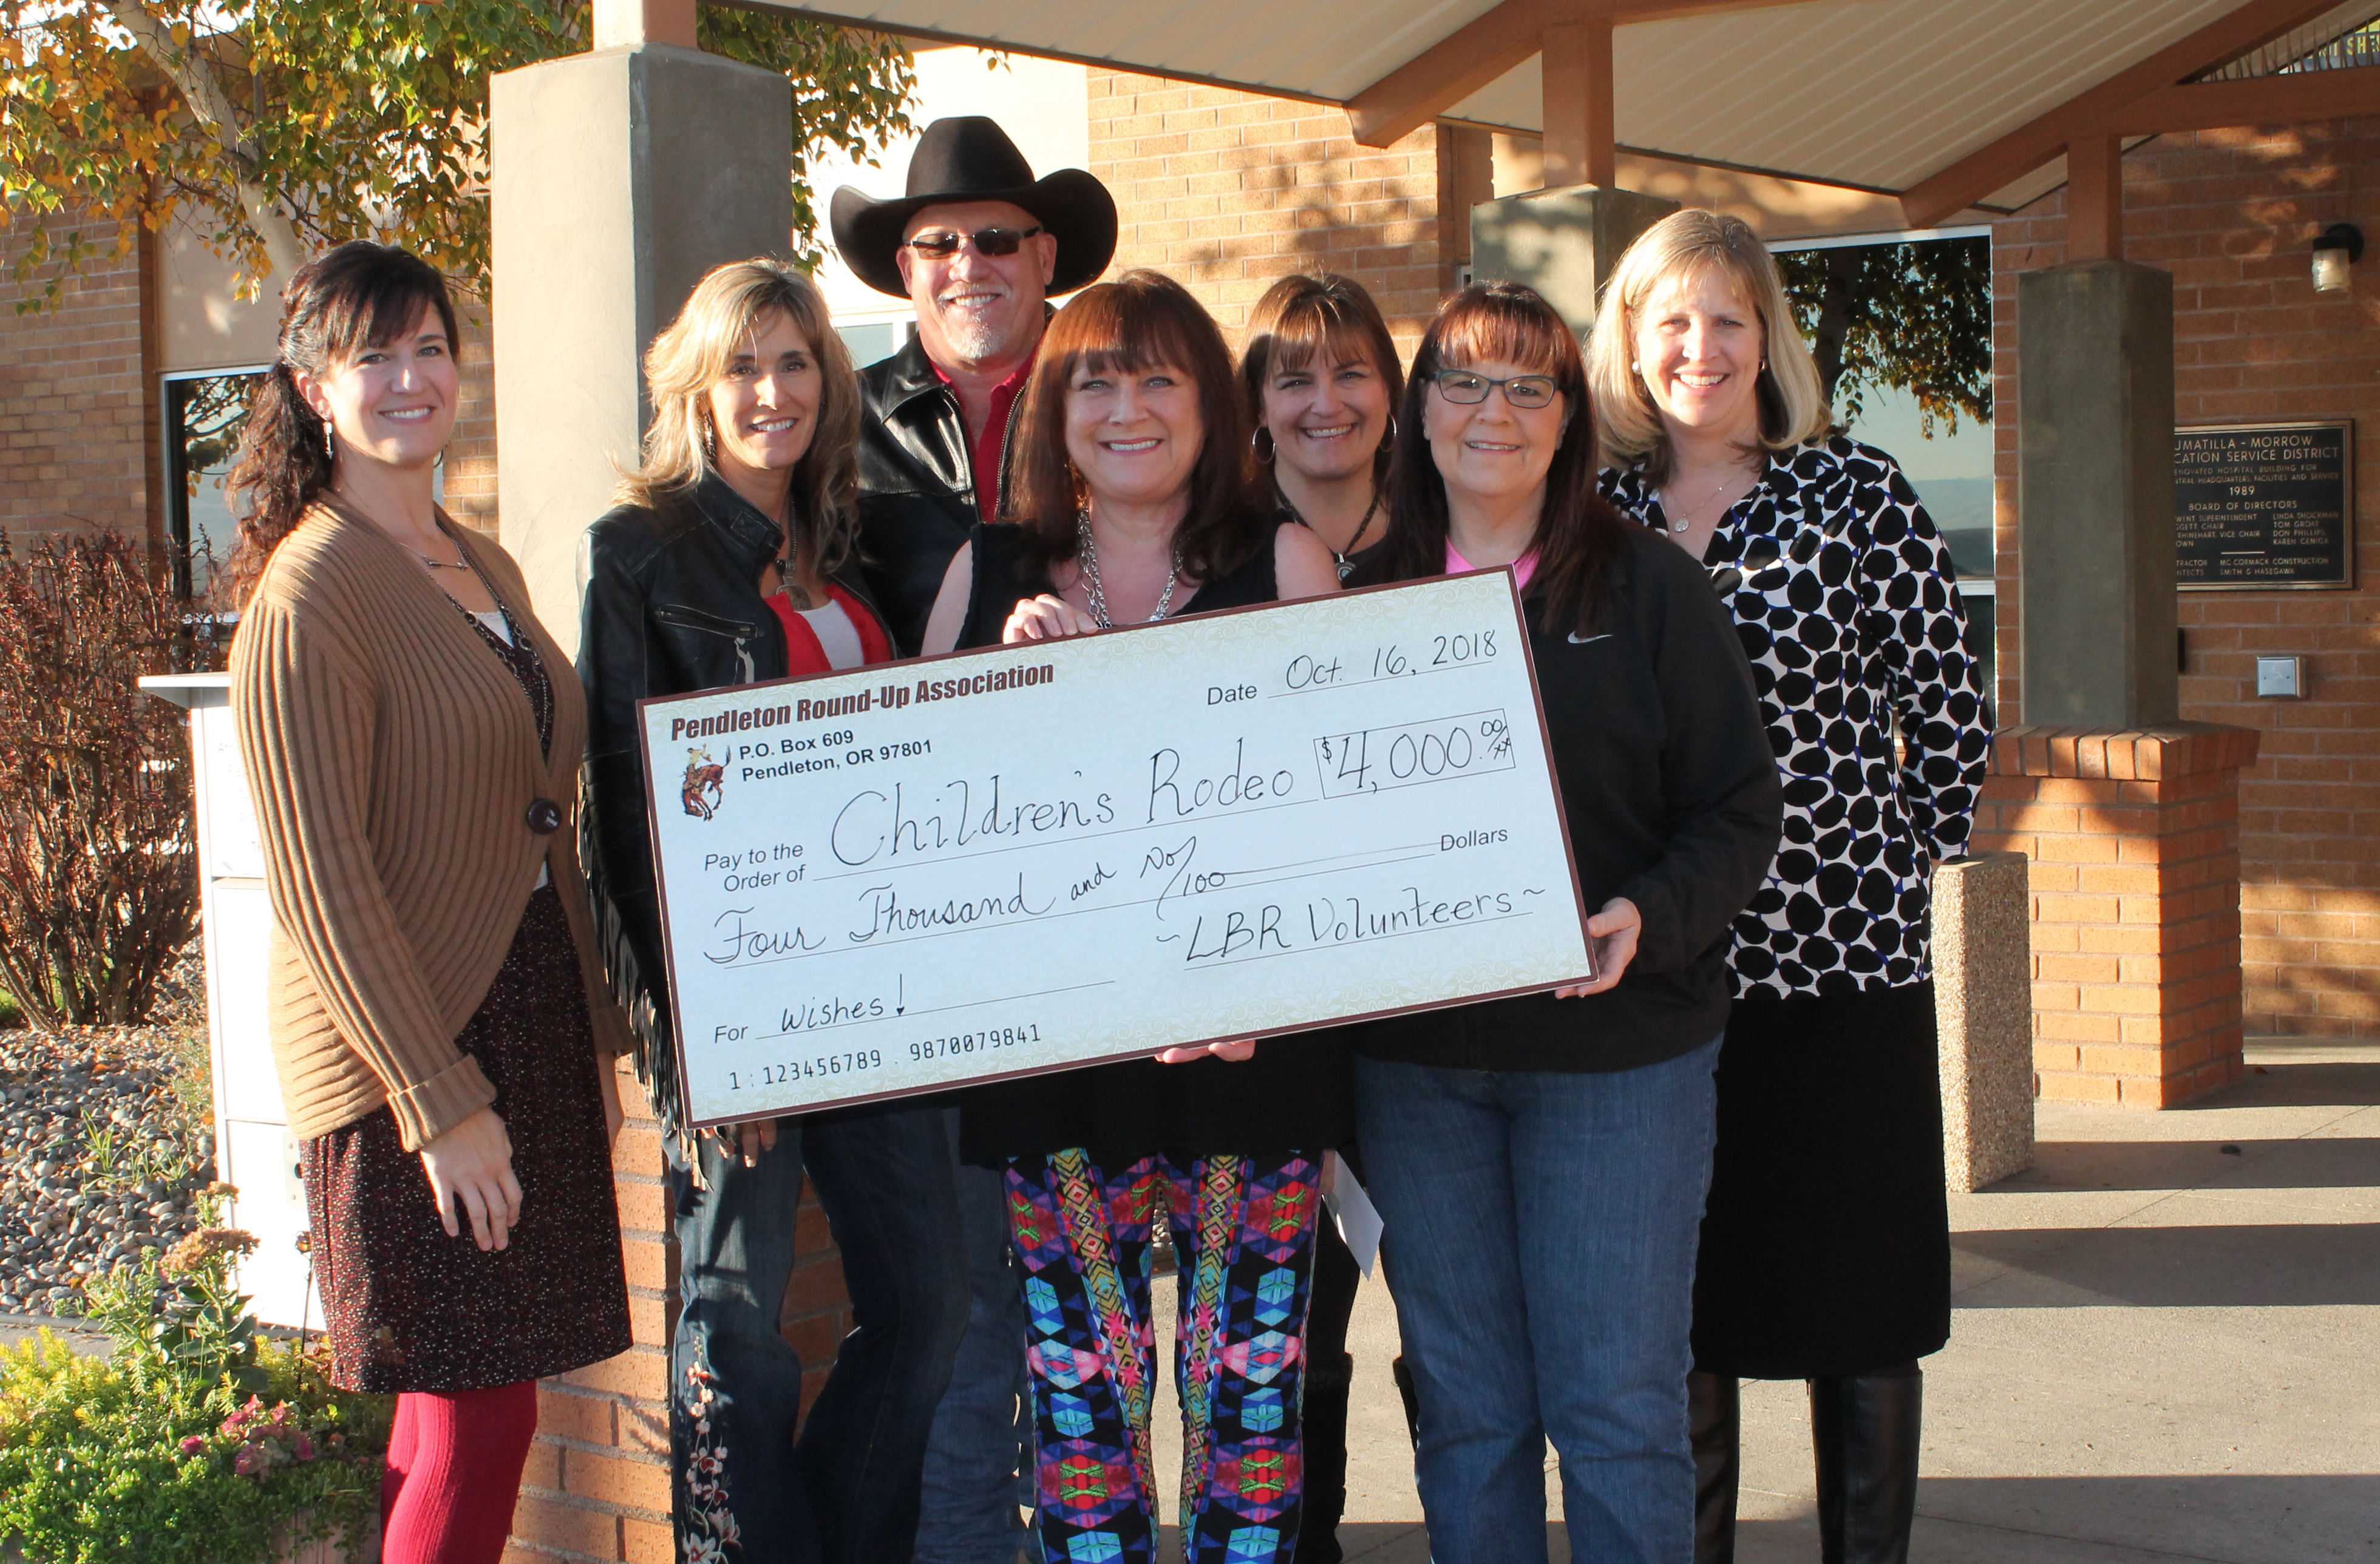 From left, Chrissy Nelson (IMESD), Jill Ledbetter and Mike Ledbetter (Round-Up), Linda Smith, Char Surber, Karen Parker and Michele Madril (all IMESD) pose with the donation check from Let 'er Buck Room volunteers.